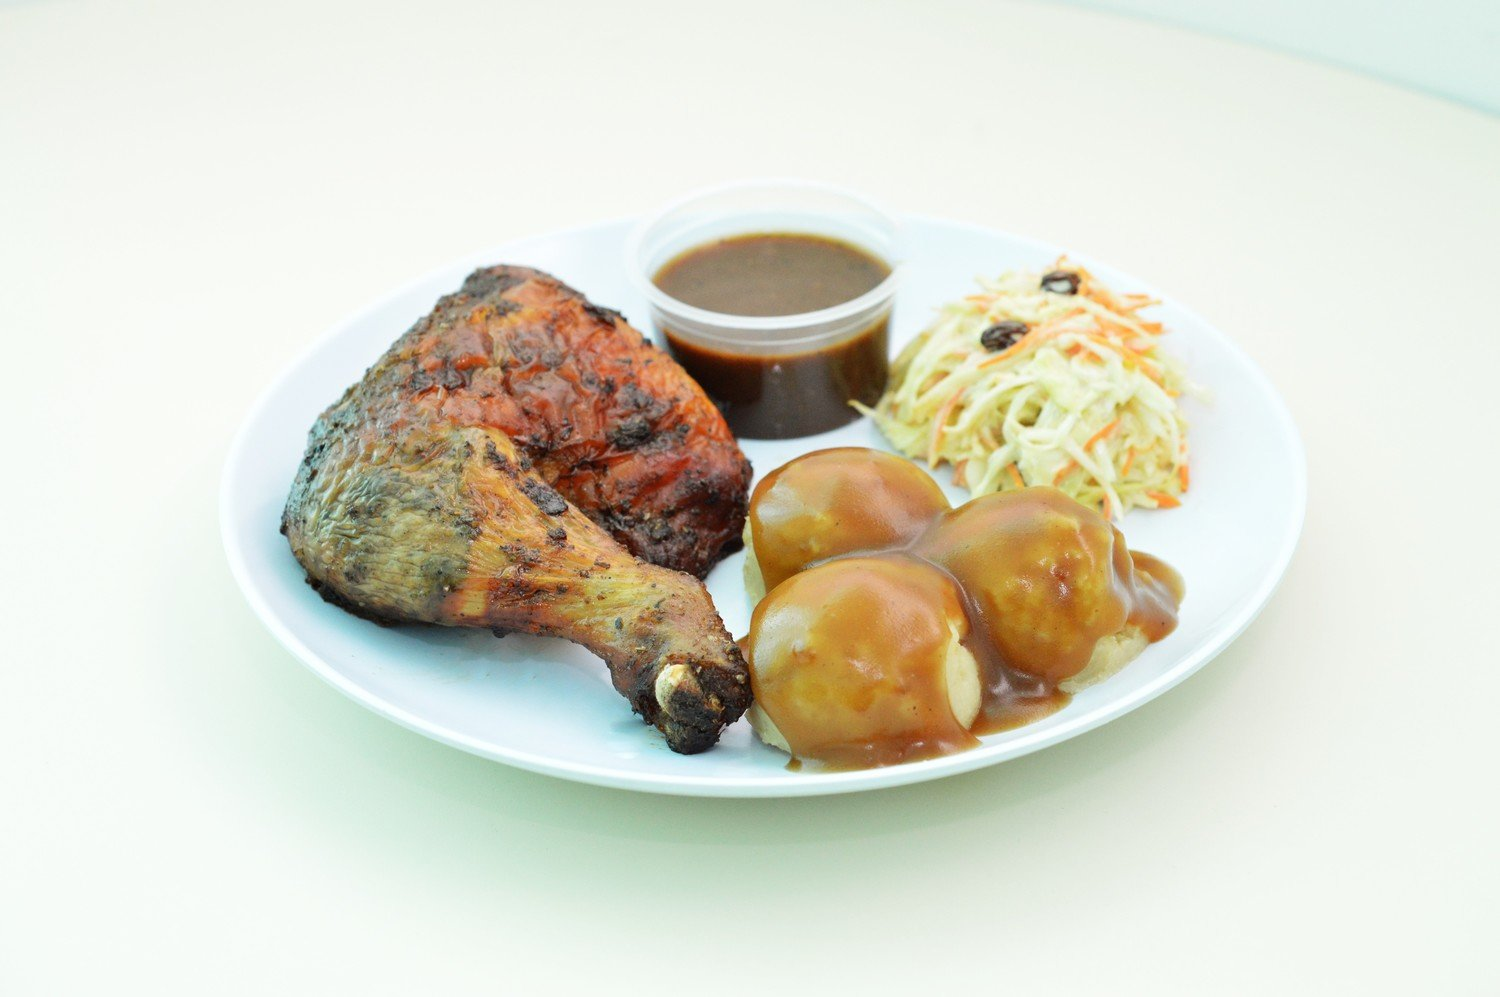 Roasted Chicken with Potato Combo 香烤雞腿馬鈴薯泥套餐